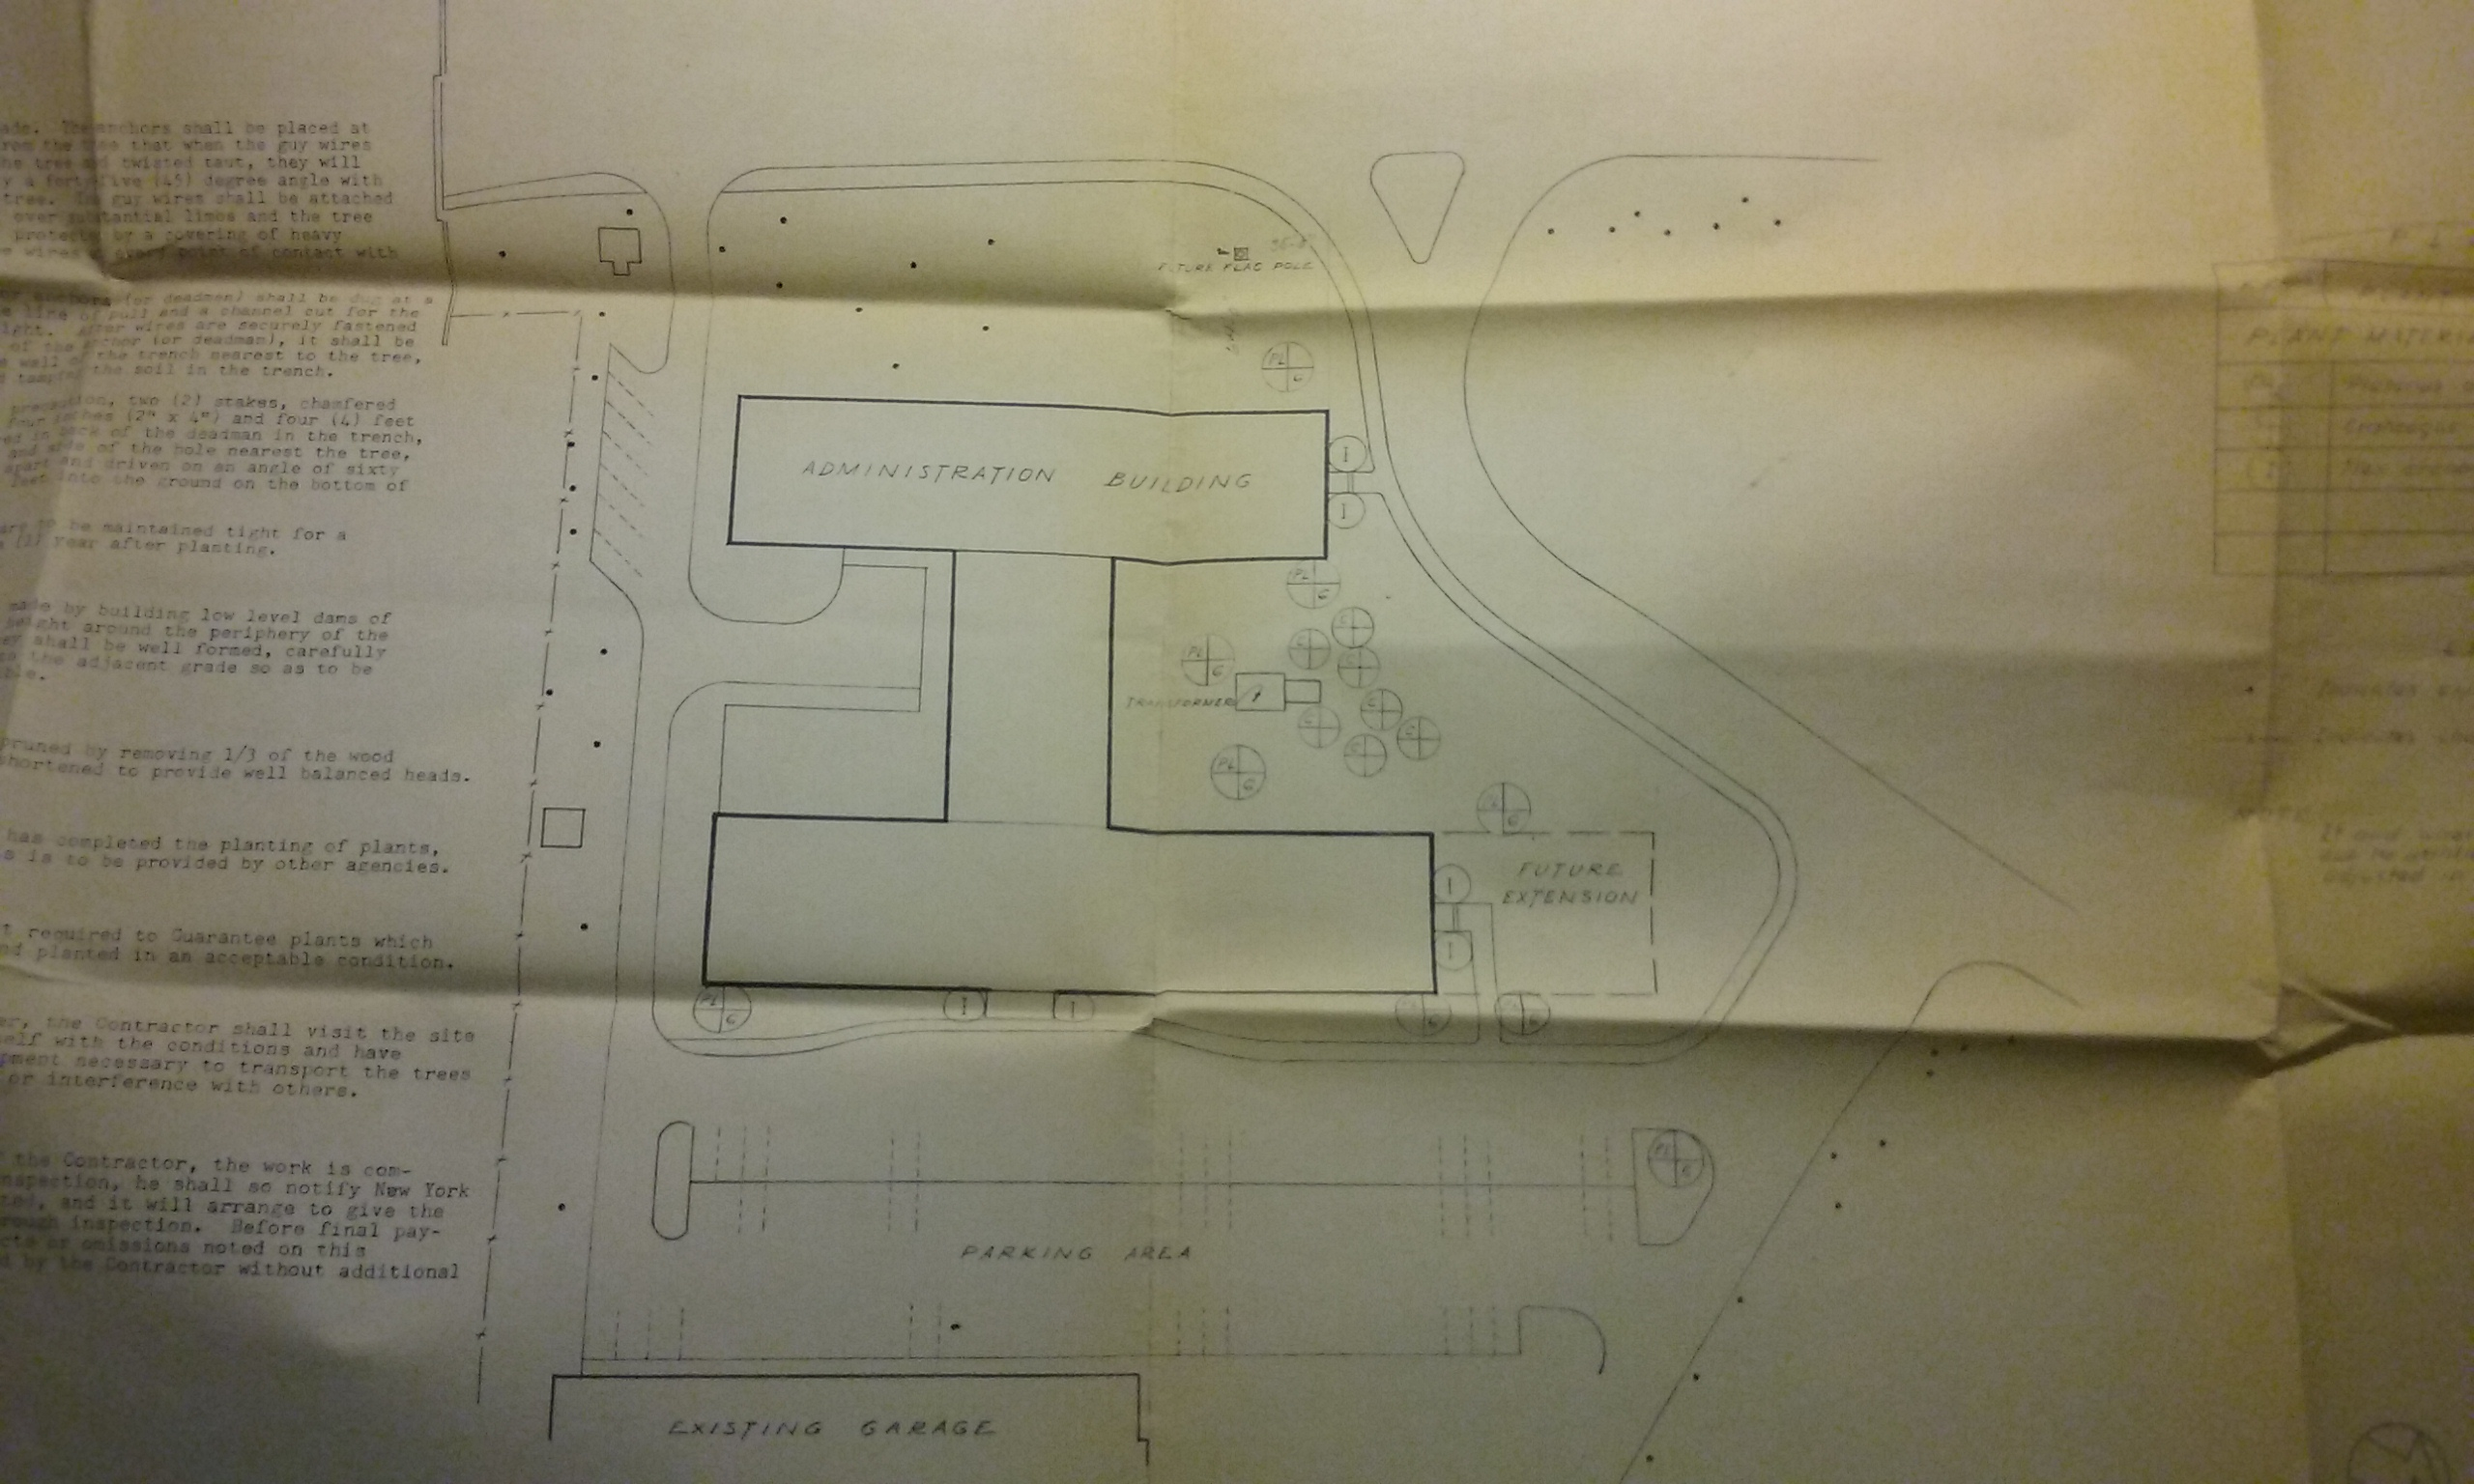 Photo of a site plan for the administration building, which also contained information about plantings.